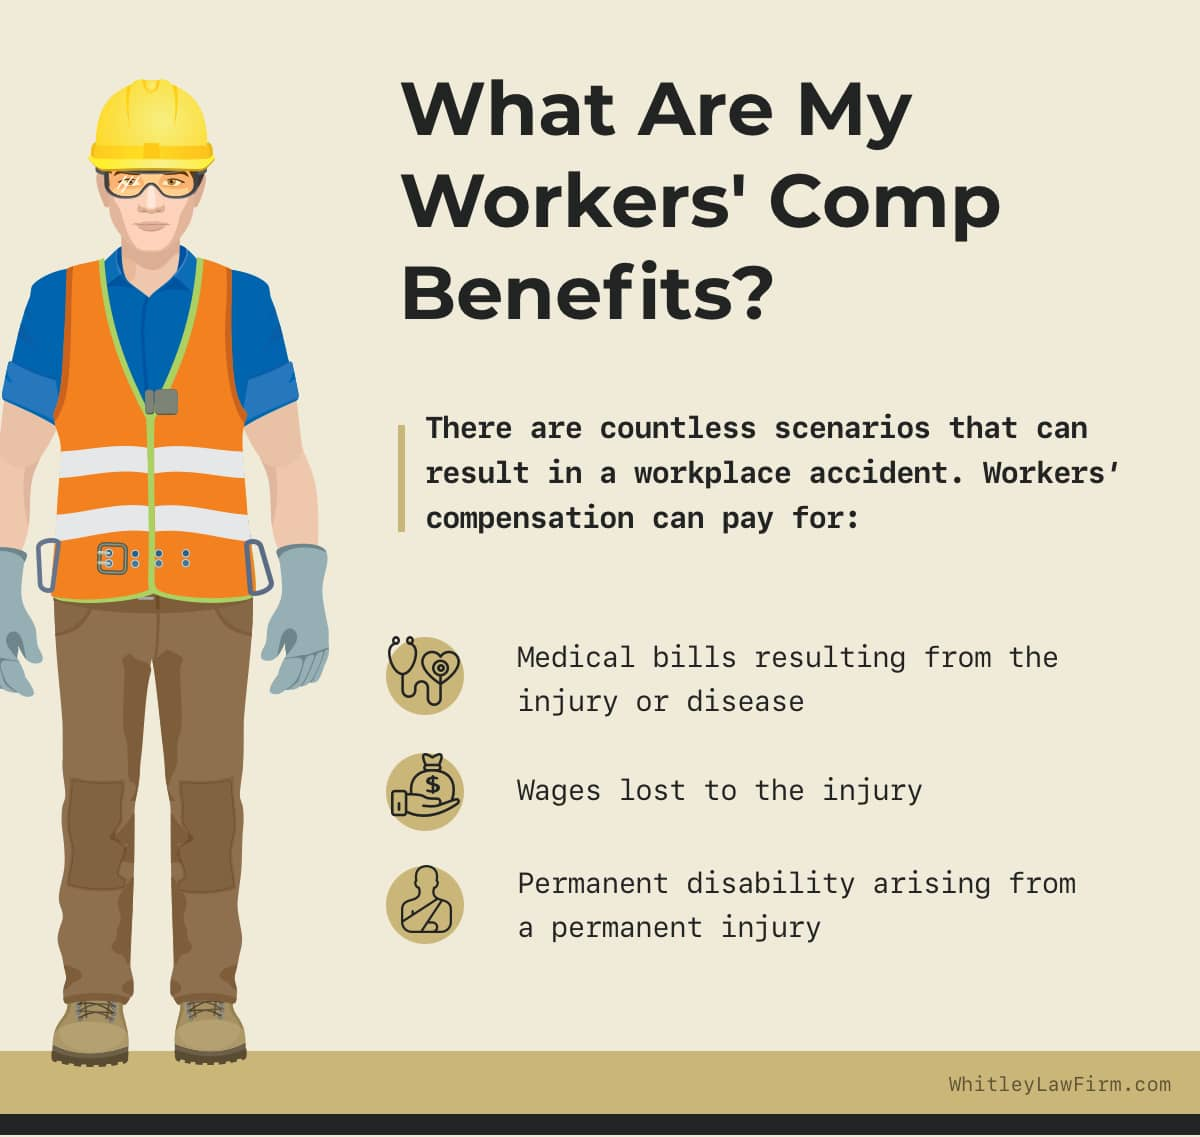 What Do My Workers' Comp Benefits Cover? | Whitley Law Firm